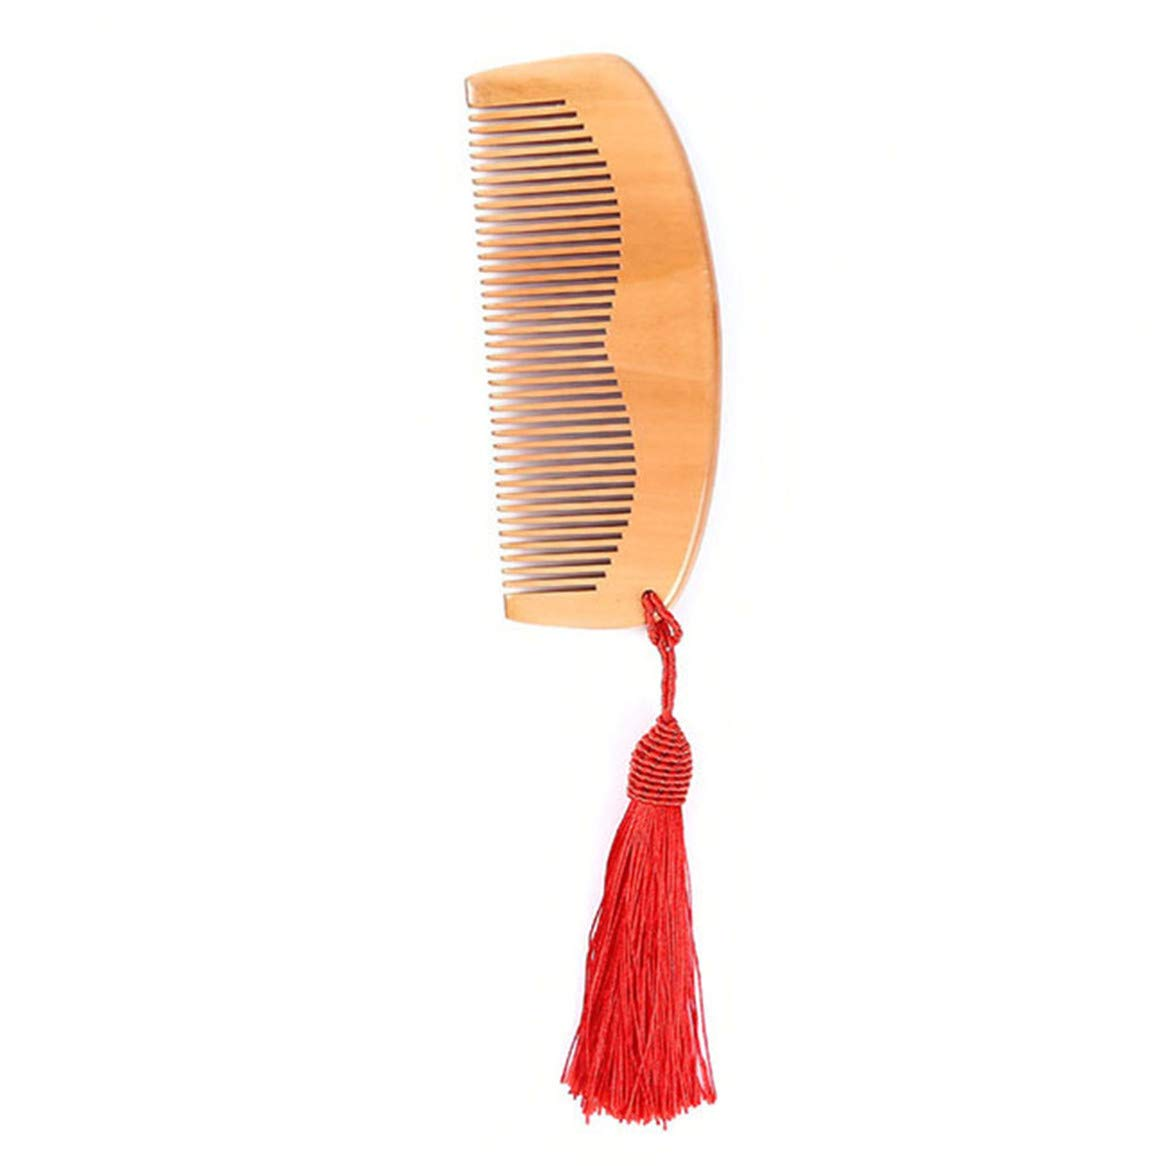 Botreelife Natural Peach Wood Comb with Tassels Anti-static Massage Hair Carved Combs (Brown)